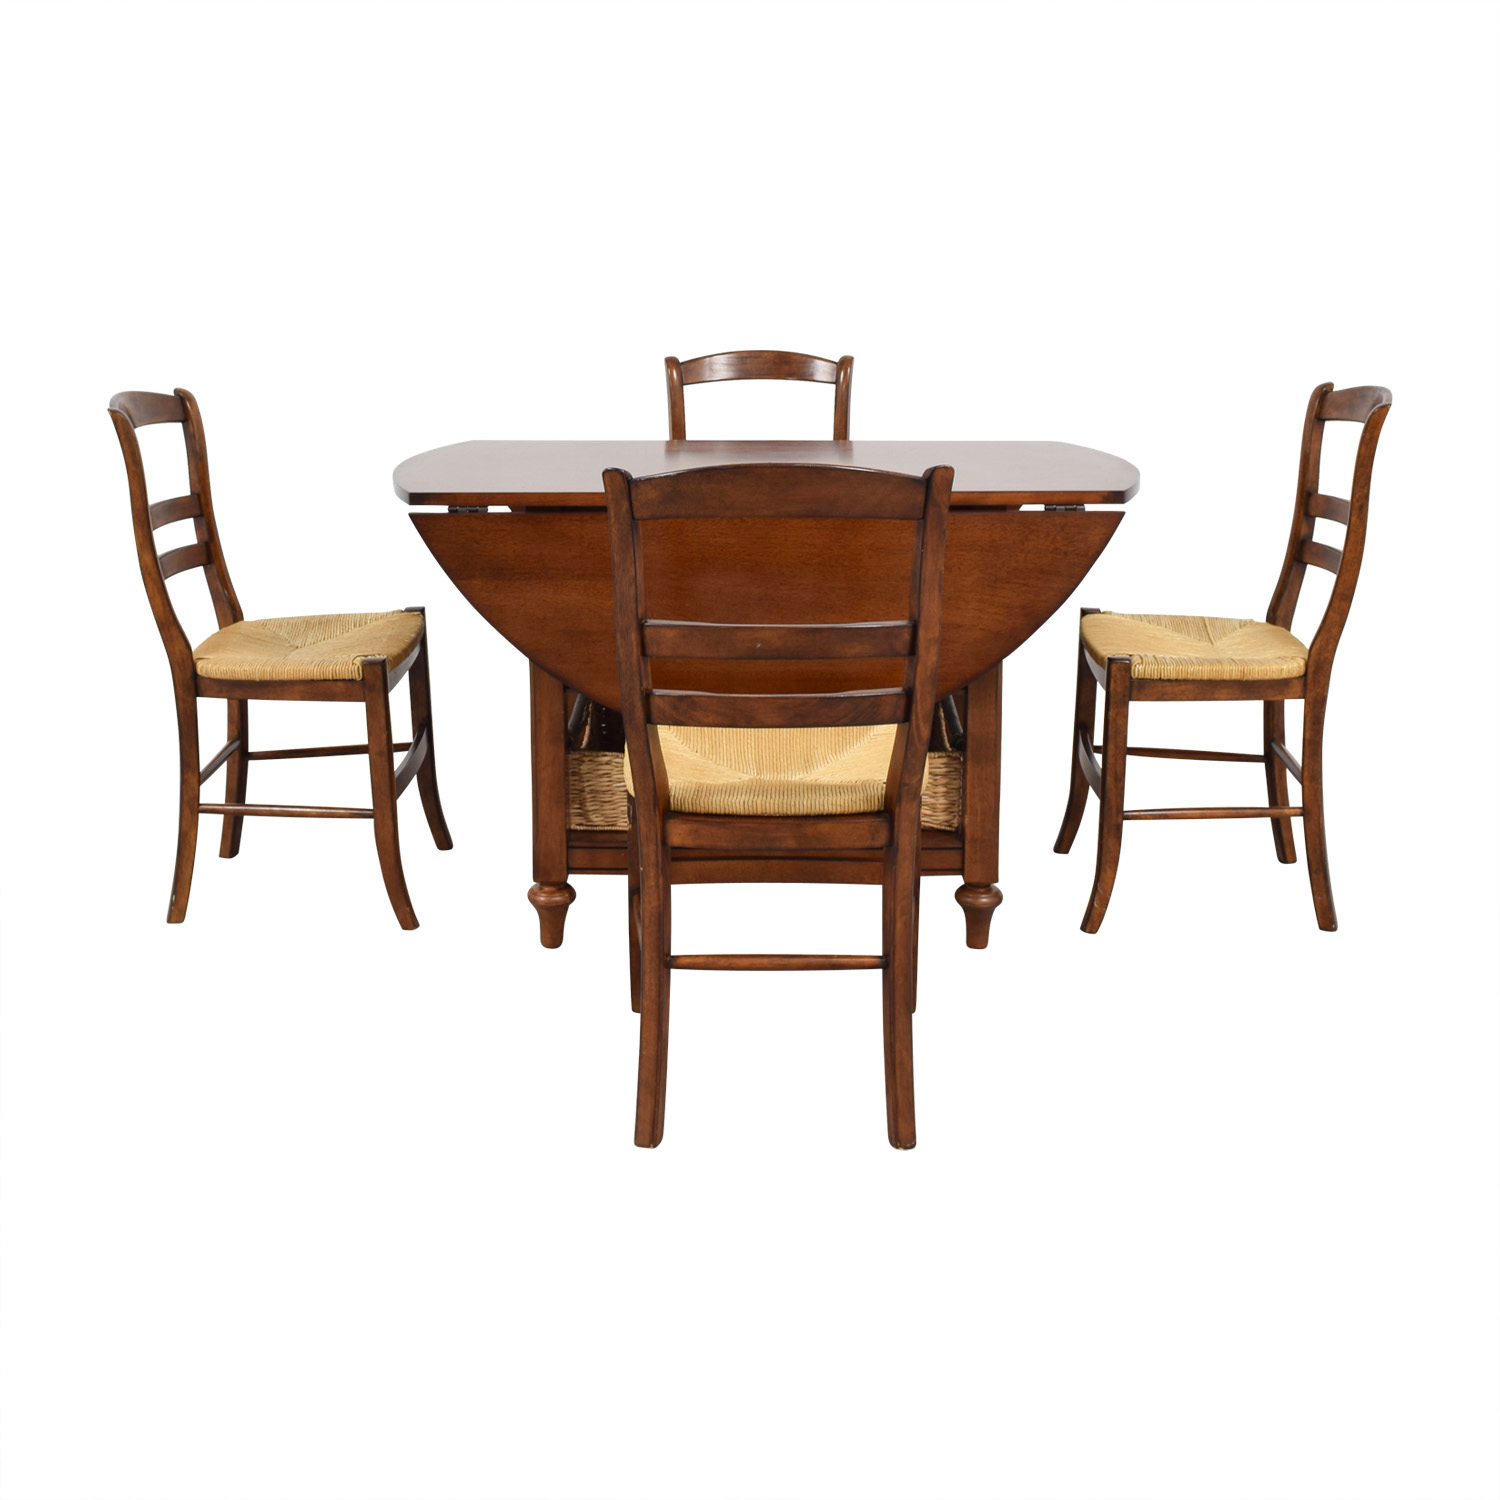 Pottery Barn Pottery Barn Shayne Drop Leaf Dining Set with Storage Baskets second hand